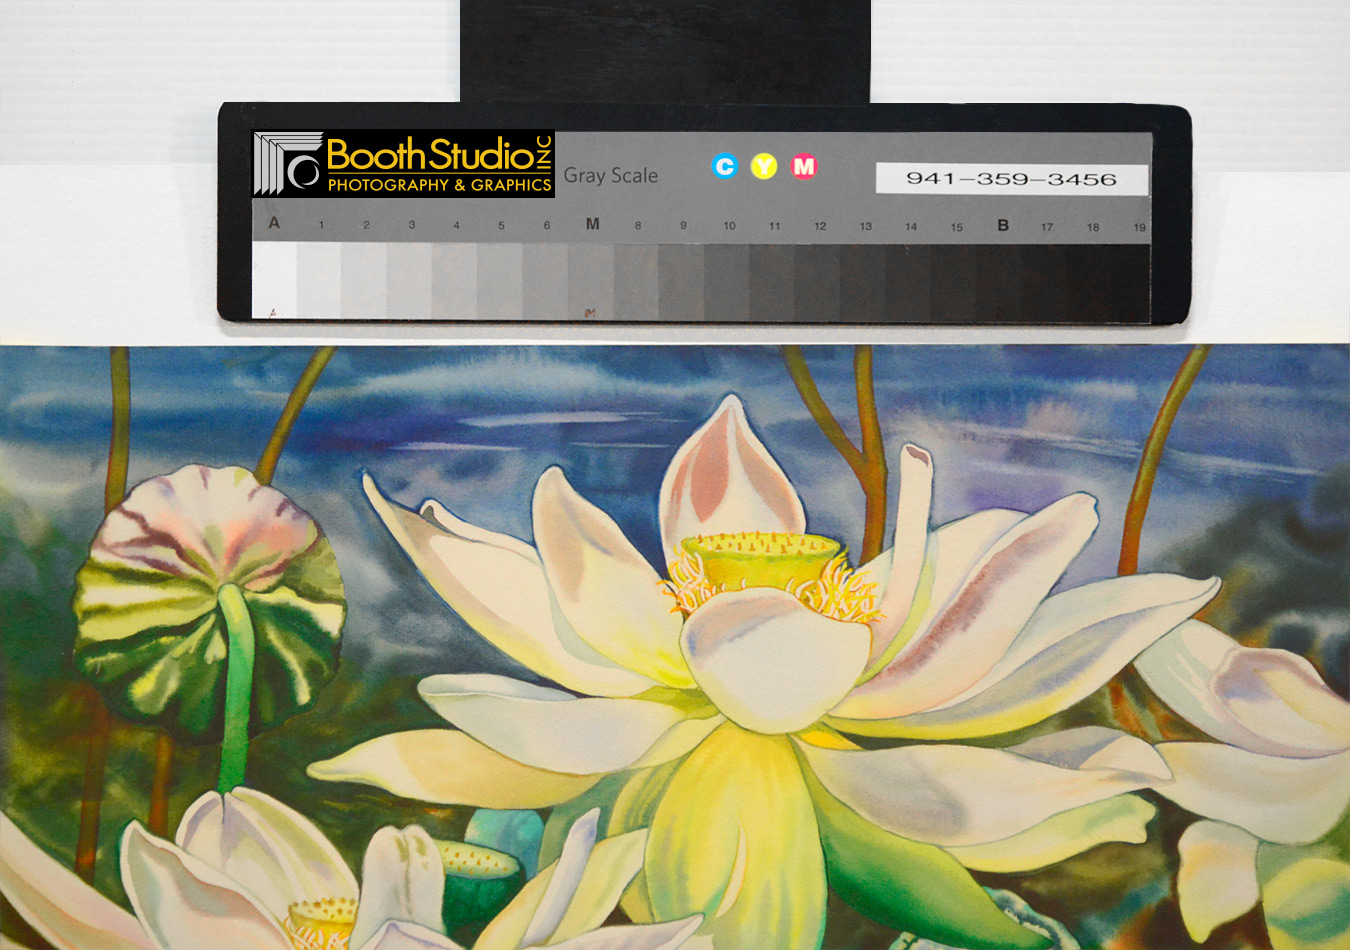 Fine art reproduction booth studio photography graphics fine art reproduction izmirmasajfo Gallery